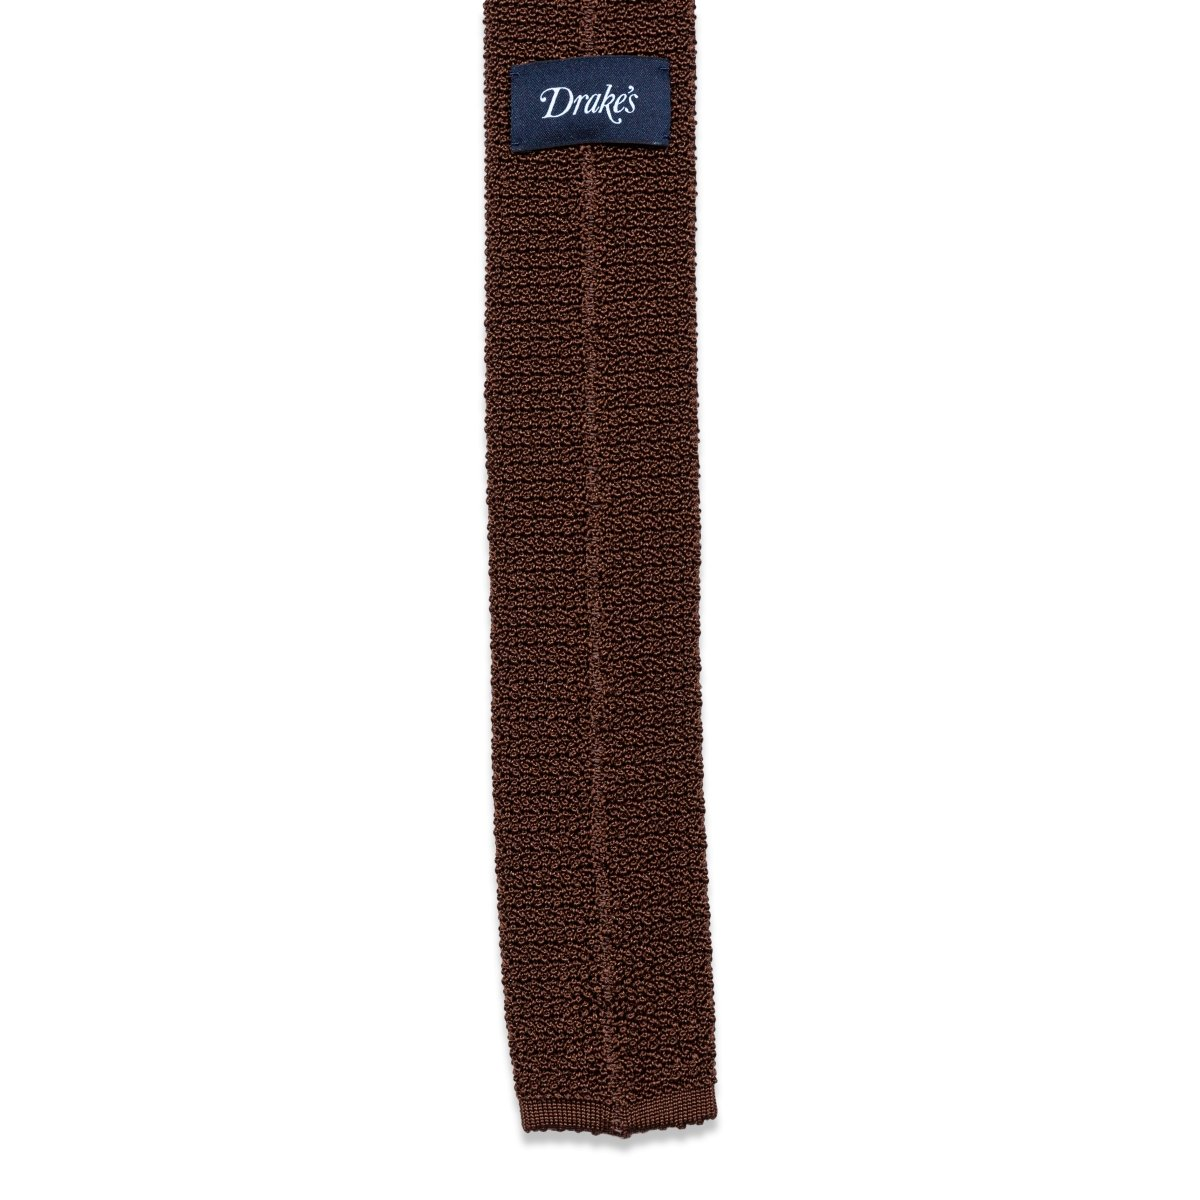 Drake's - Das, Brown knitted, Dassen | NEW TAILOR Webshop